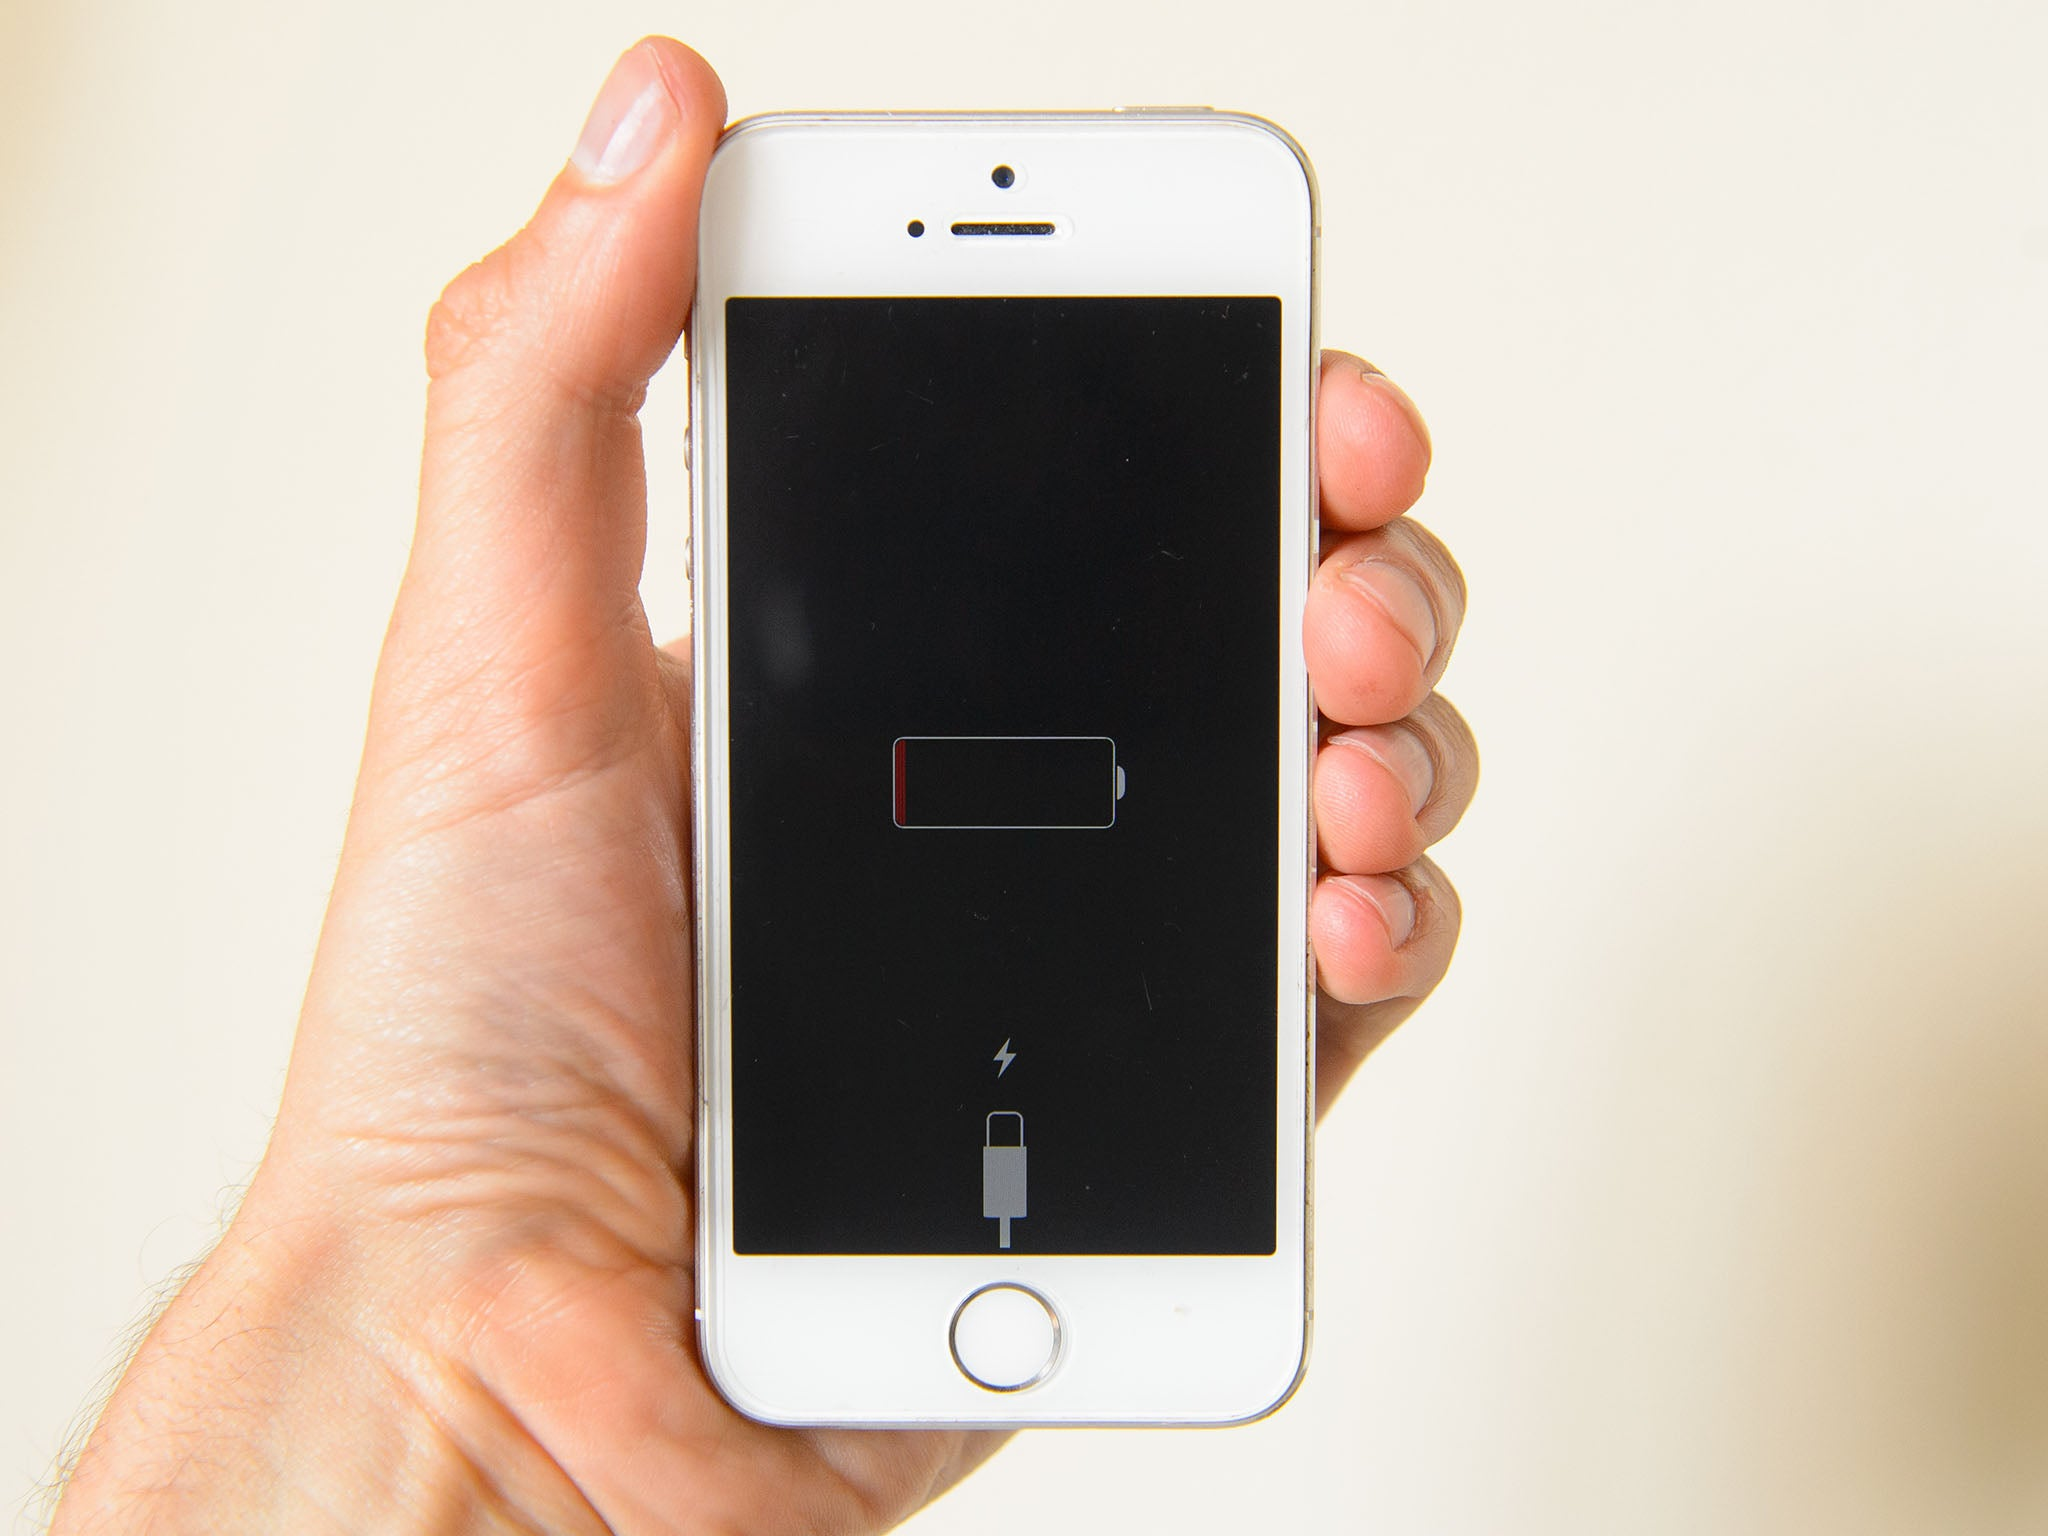 iPhone battery life: Tips to make your Apple handset last longer